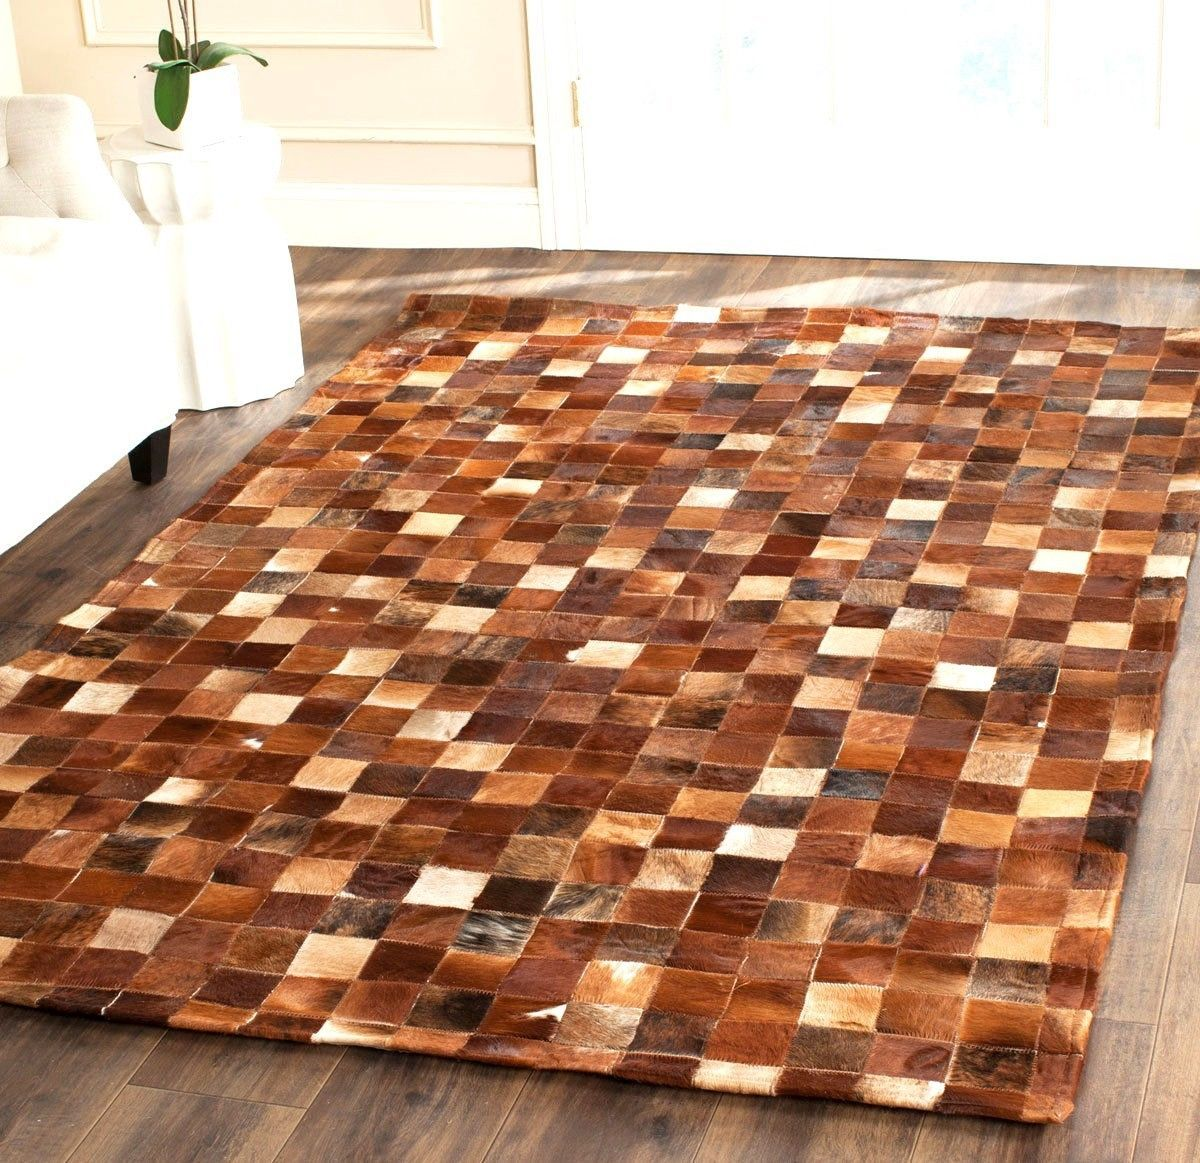 Primary image for Safavieh Hand-woven Studio Leather Cowhide Brown Rug 4' x 6'  STL517B4